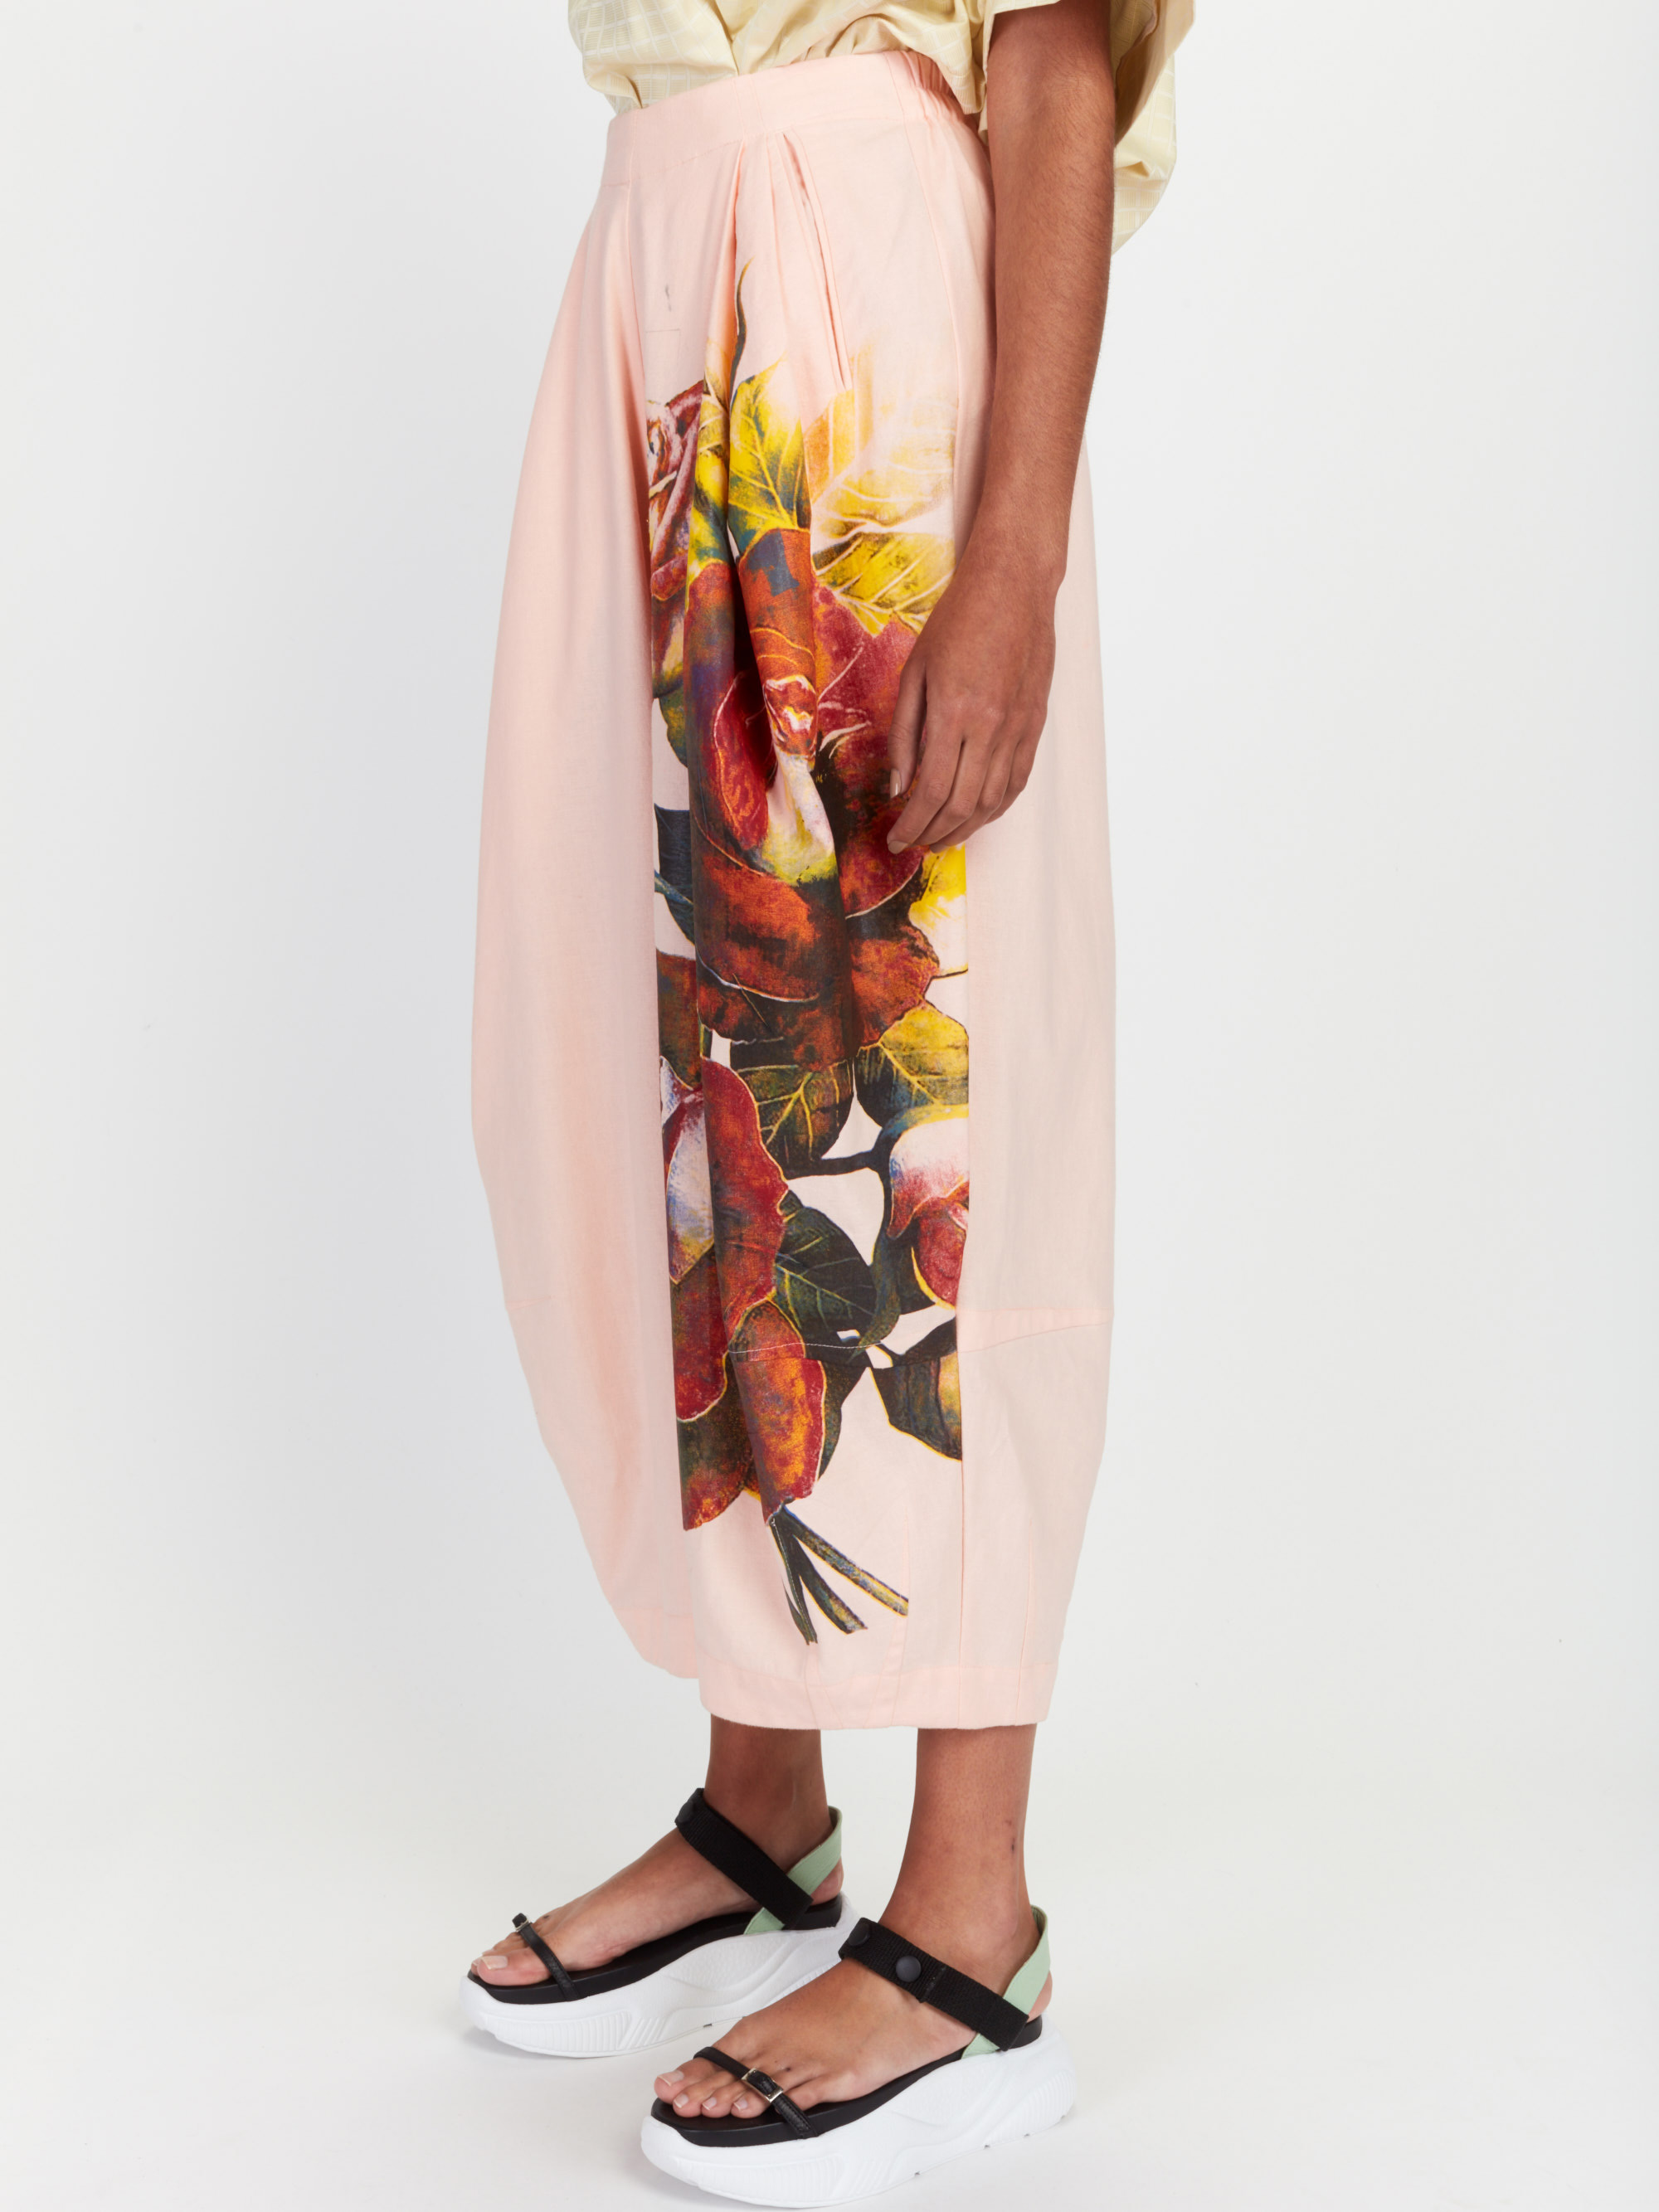 jt_zappa-printed-pant_29-26-2018__picture-1276